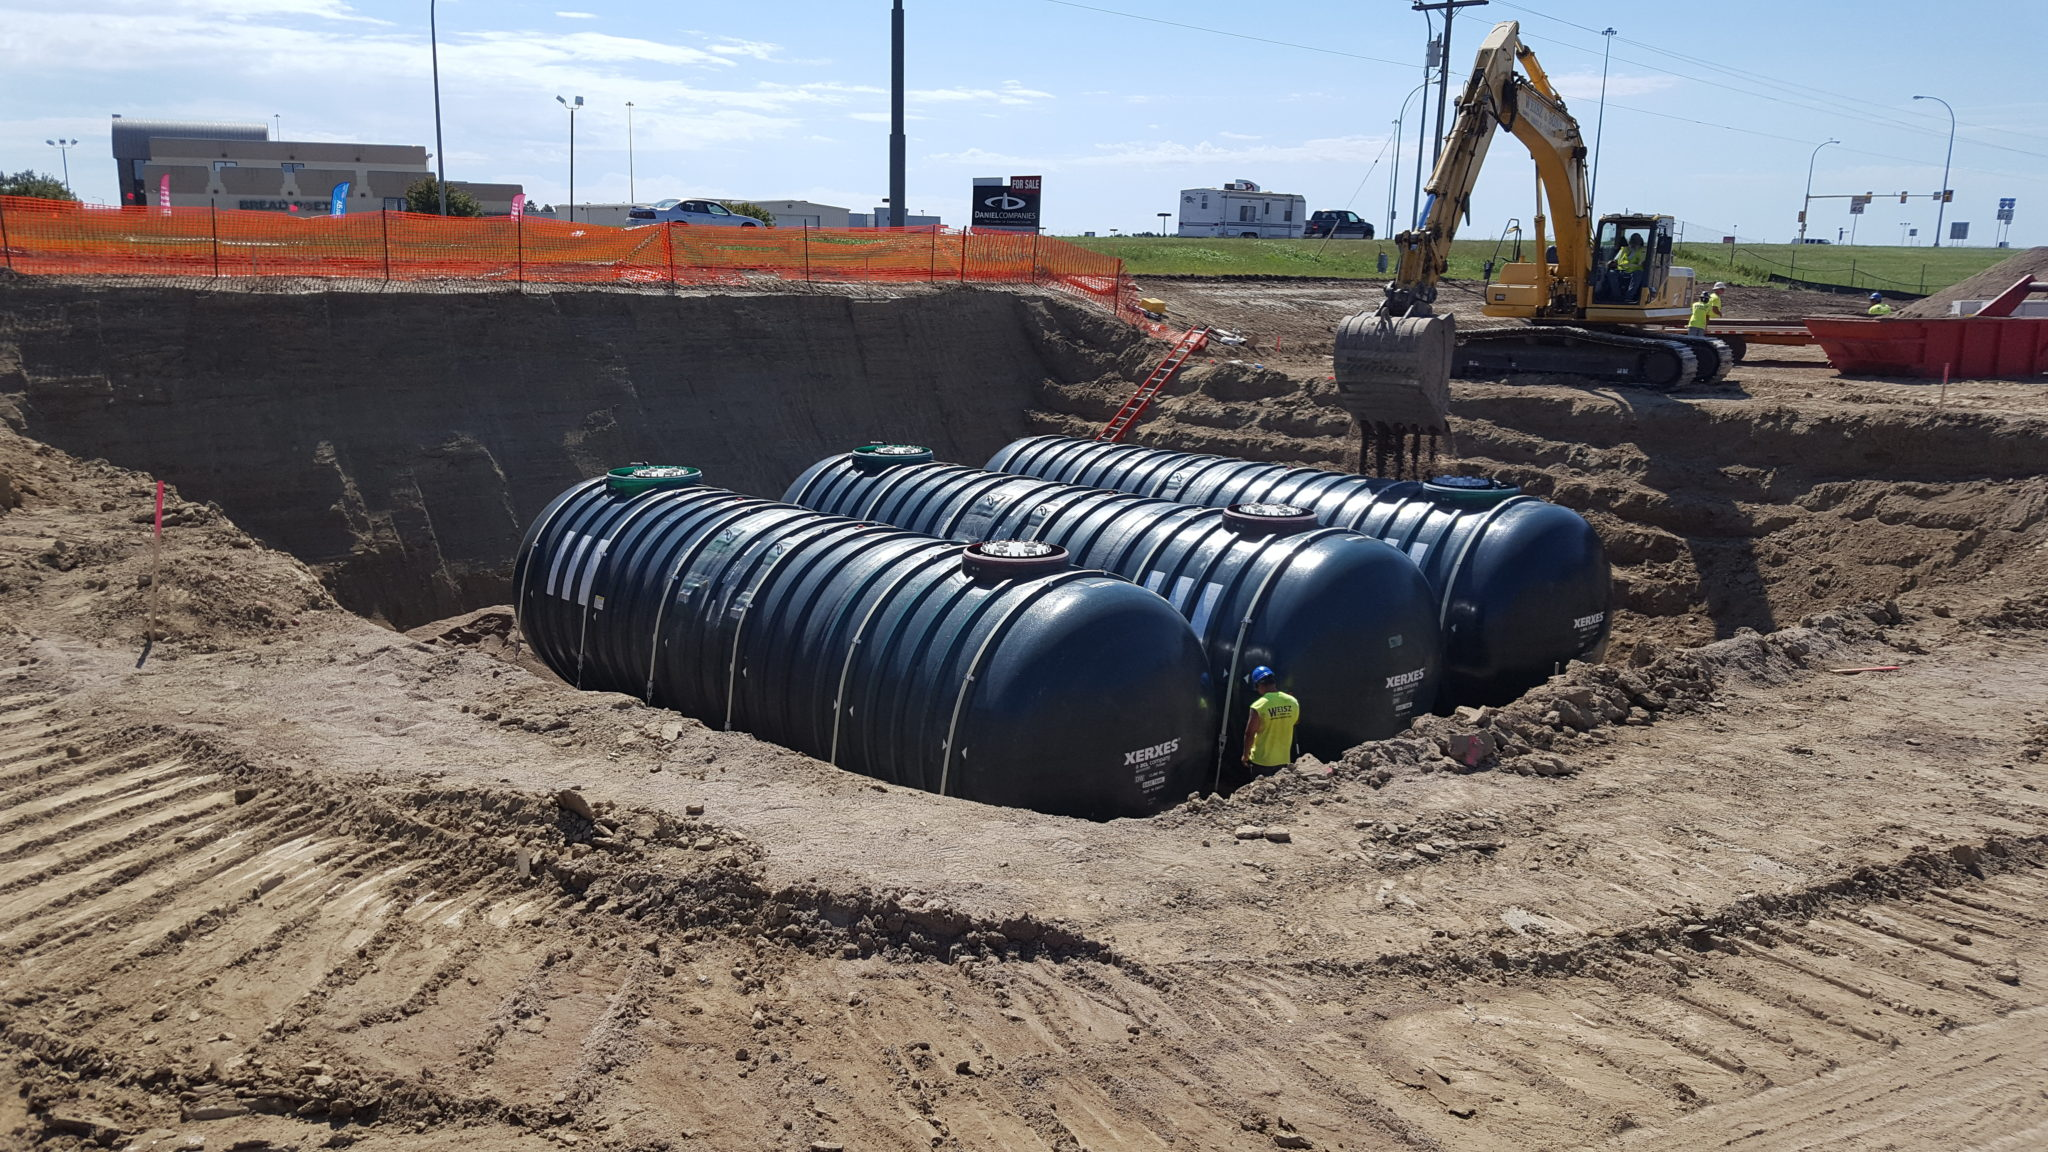 Tanks in ground with construction